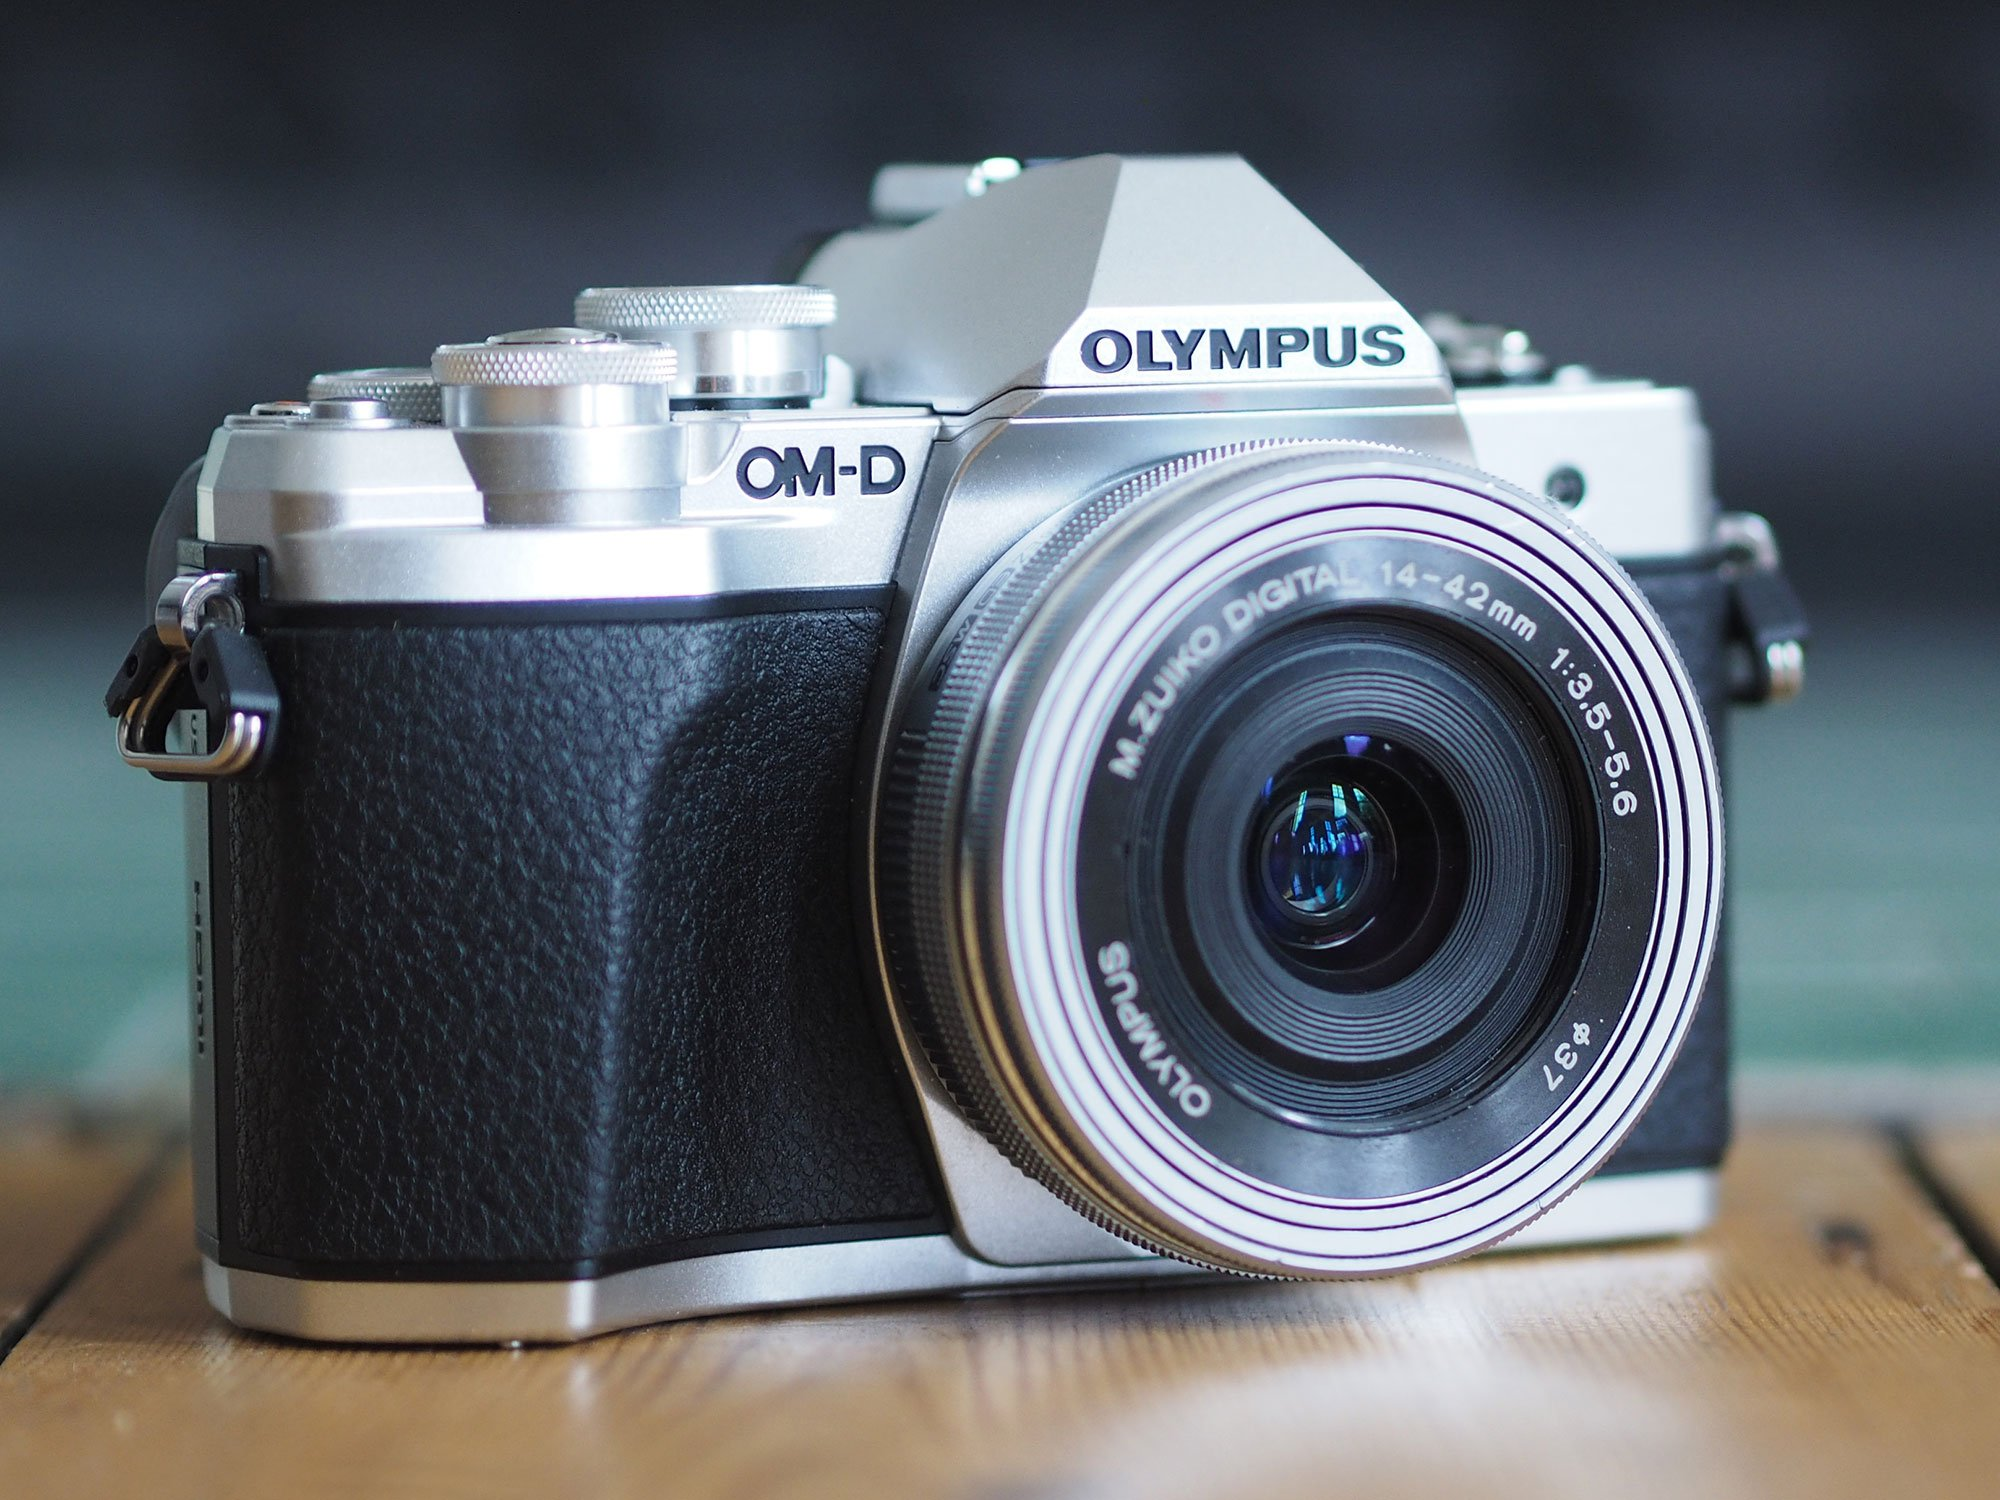 Photos taken with olympus omd em10 Olympus OM-D E-M10 Mark III Review - Image Quality